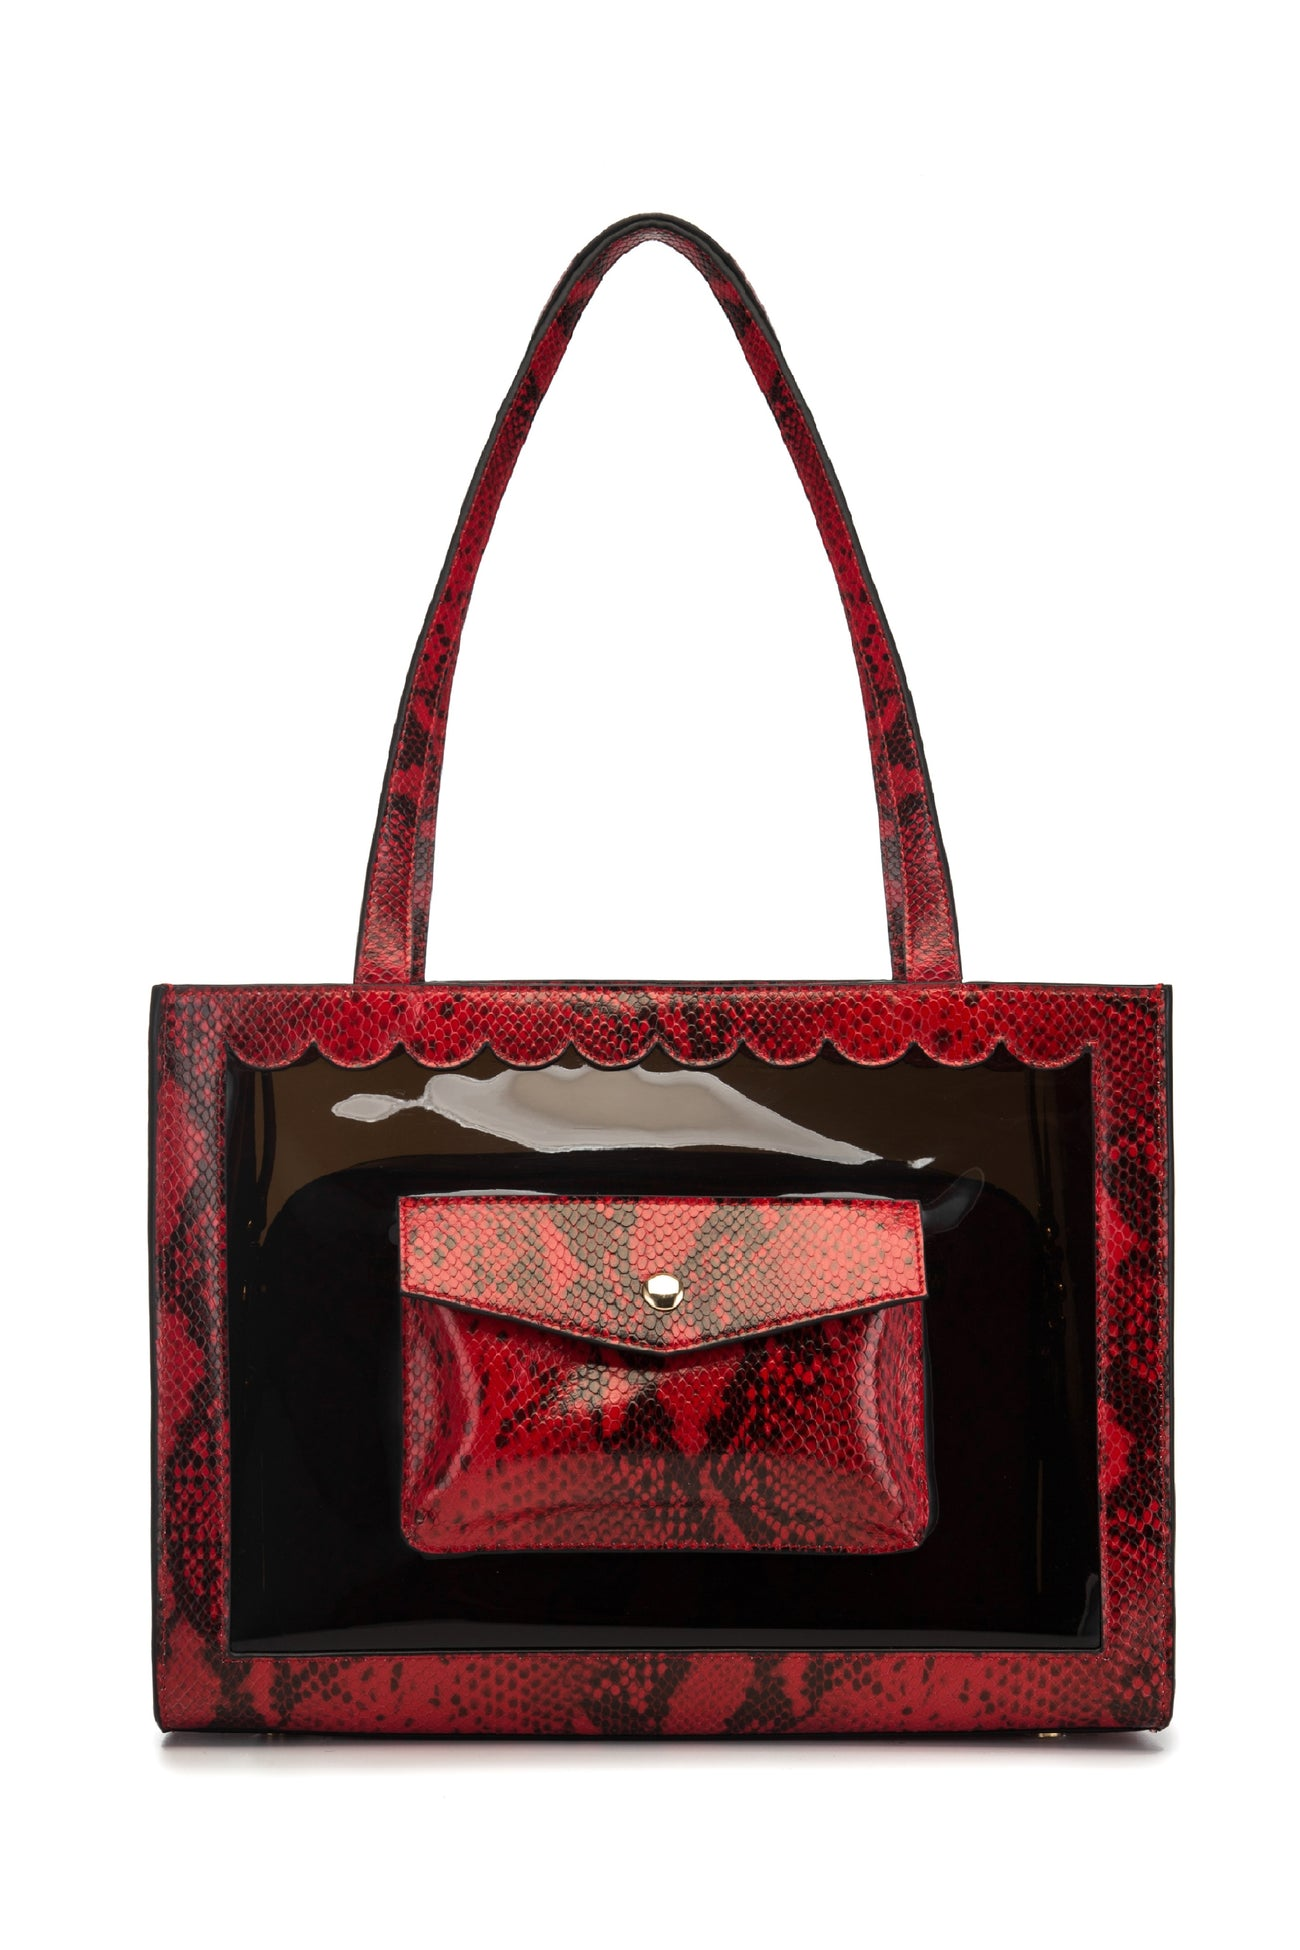 Hamoon Tote (Sold Out)